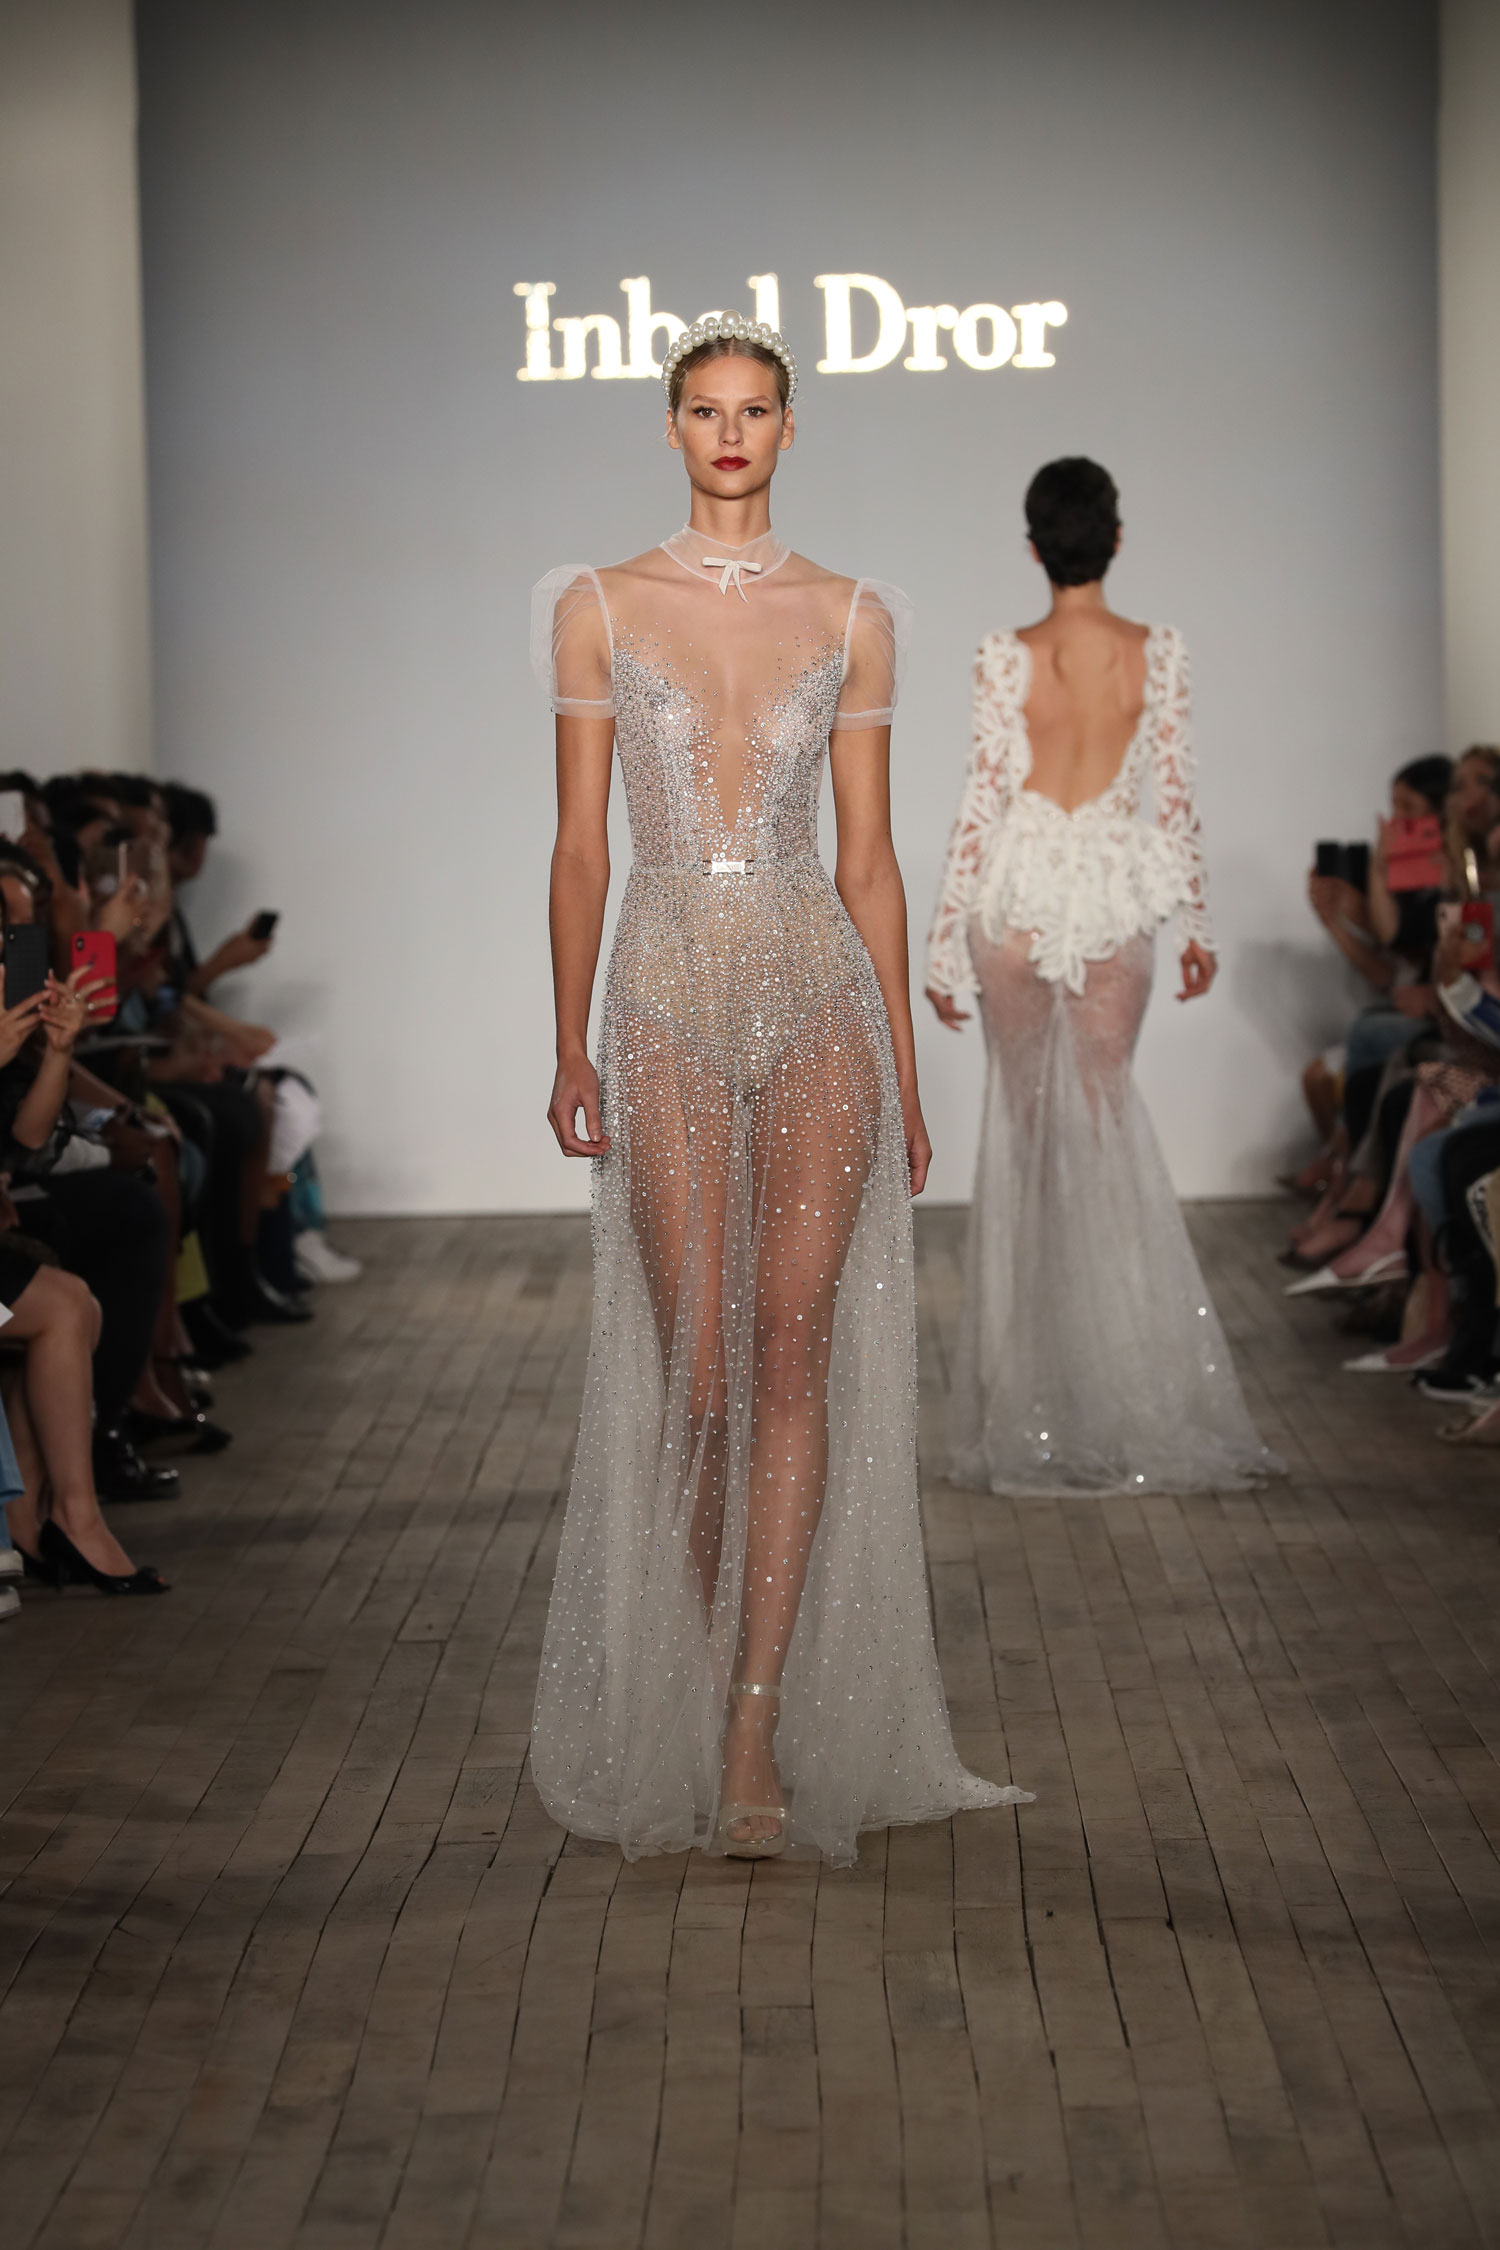 Sheer Inbal Dror wedding dress with little bow detail in front